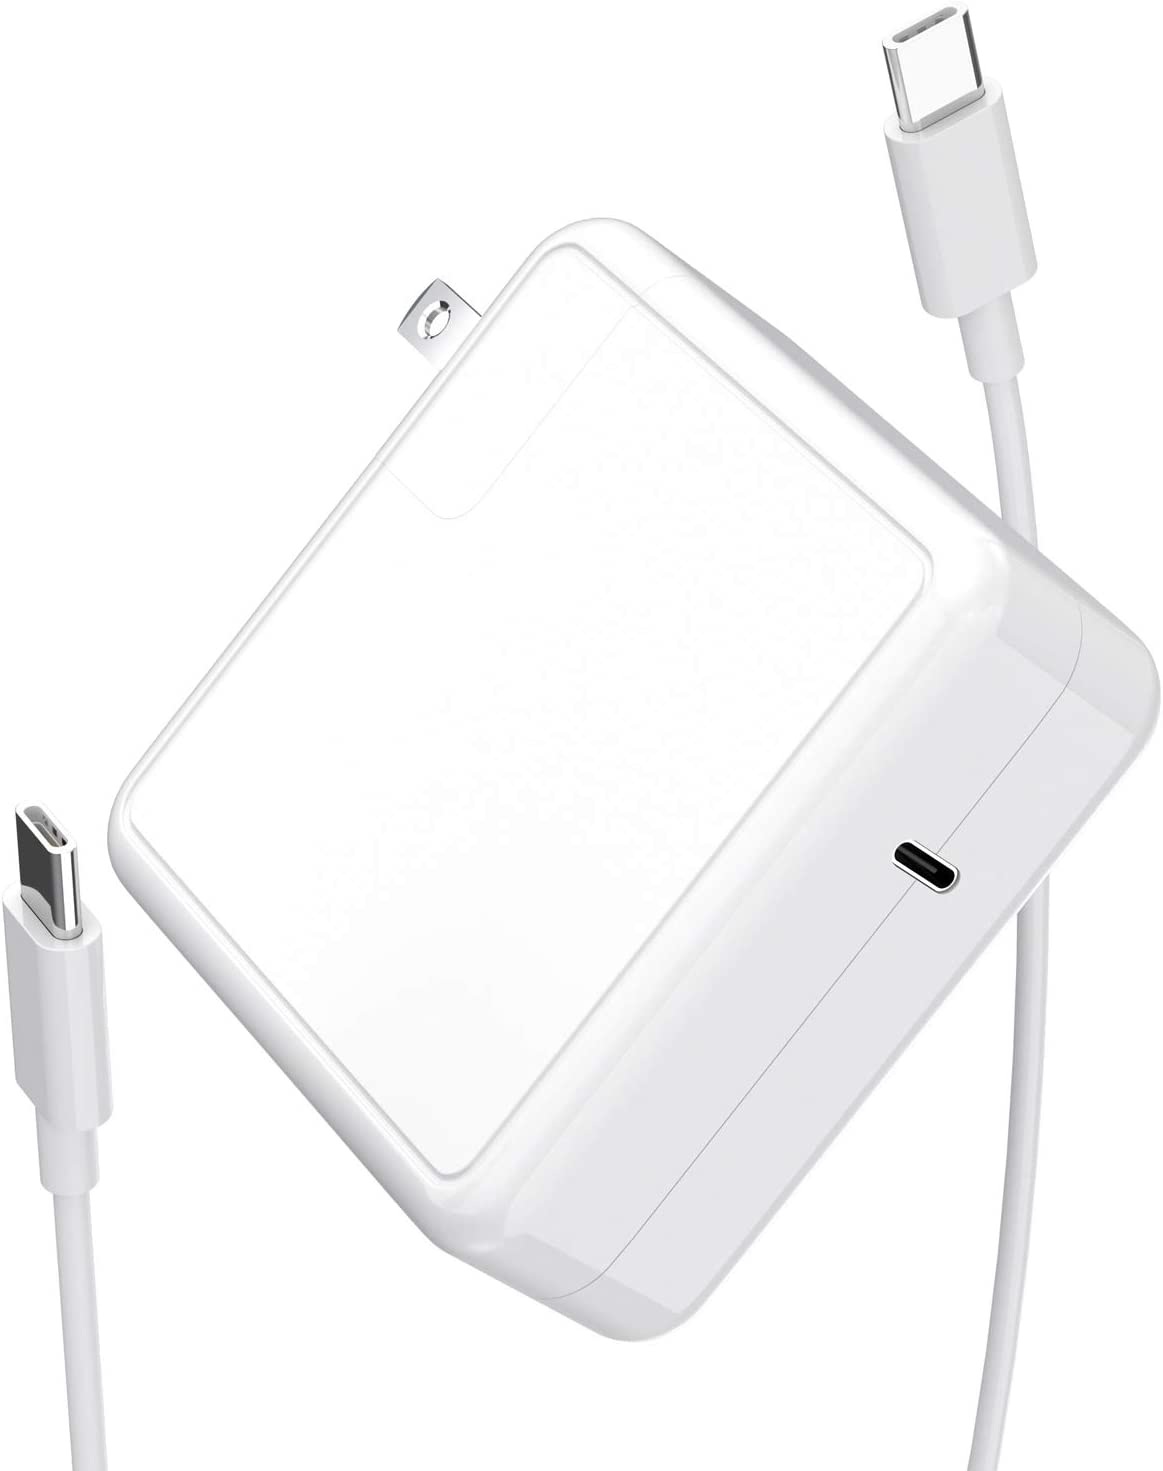 Mac Book Pro Charger USB C Power Adapter 61W, PD Mac Book Air Charger, Compatible 61W, 45W, 36W, 27W,12W for Mac Book Pro/Air, i-Pad Pro 12.9'', 11'',Switch, More Type C Devices,6.6ft USB C Cable